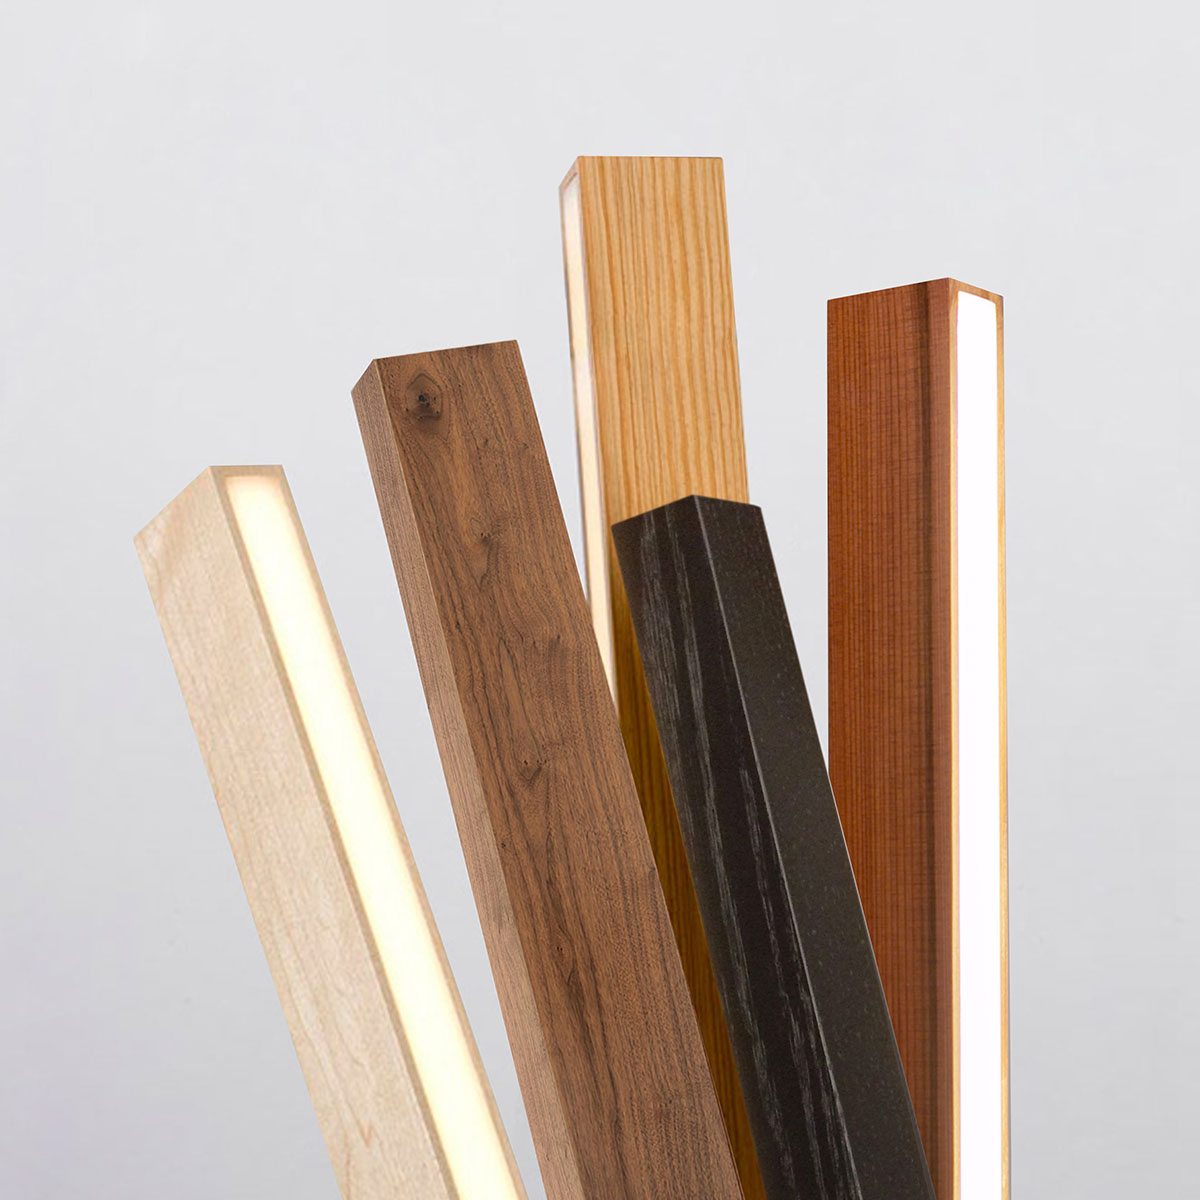 Stickbulb's five material options: maple, walnut, reclaimed heart pine, ebonized oak and reclaimed water tower redwood.